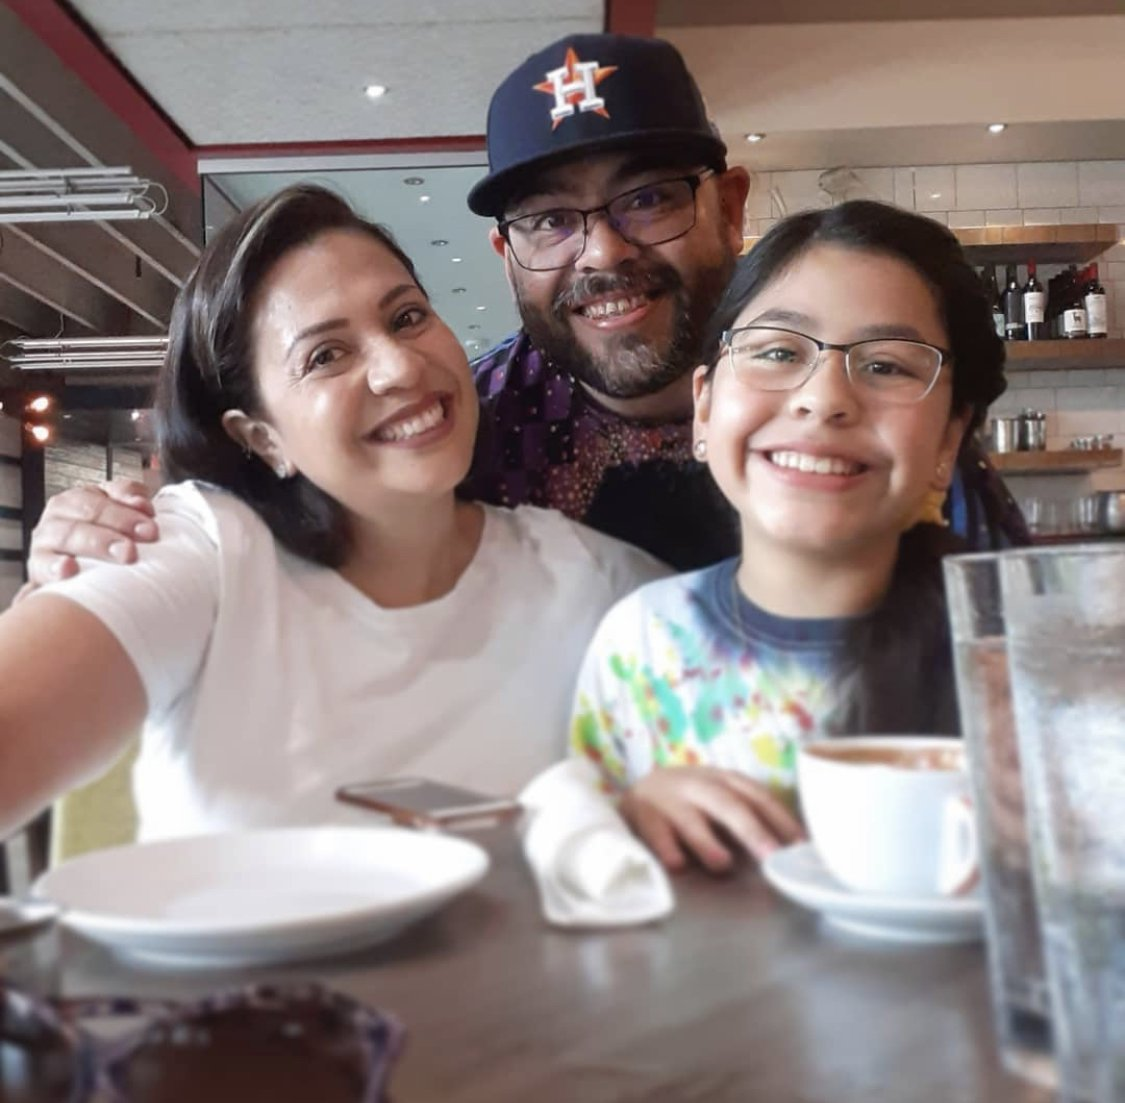 We have enjoyed seeing families join us for Brunch as we safely re-open to serve you delicious food. Thank You Houston for your incredible support! @manuel_ariz We are open for Dine In and Curbside Brunch 'til 3. Closed on Monday. #HoustonEats #SundayBrunch #HoustonIsFamilypic.twitter.com/62fqlHgmjz